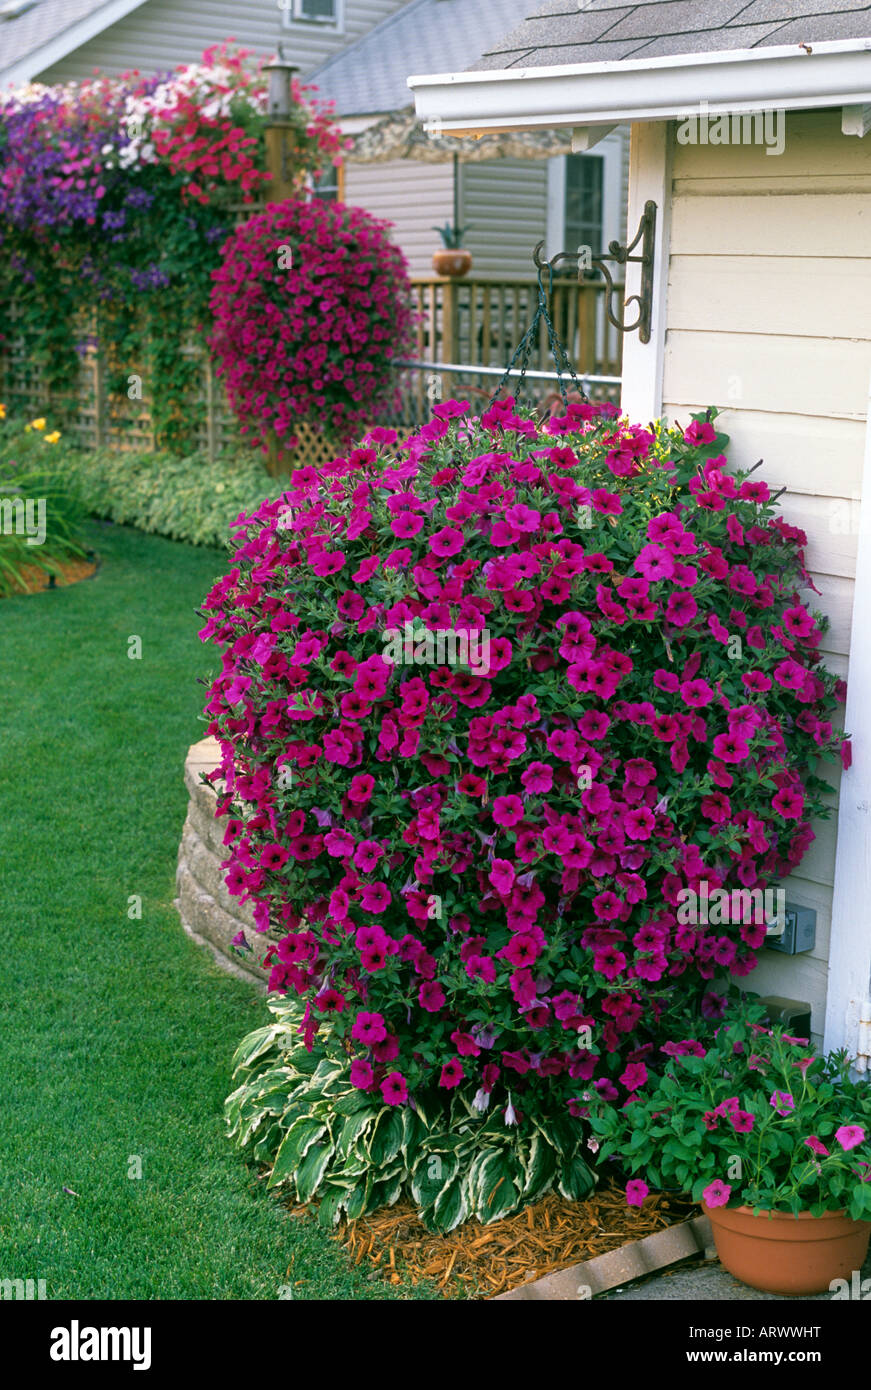 Hanging Baskets Of Tidal Wave Petunias And Potting Shed In